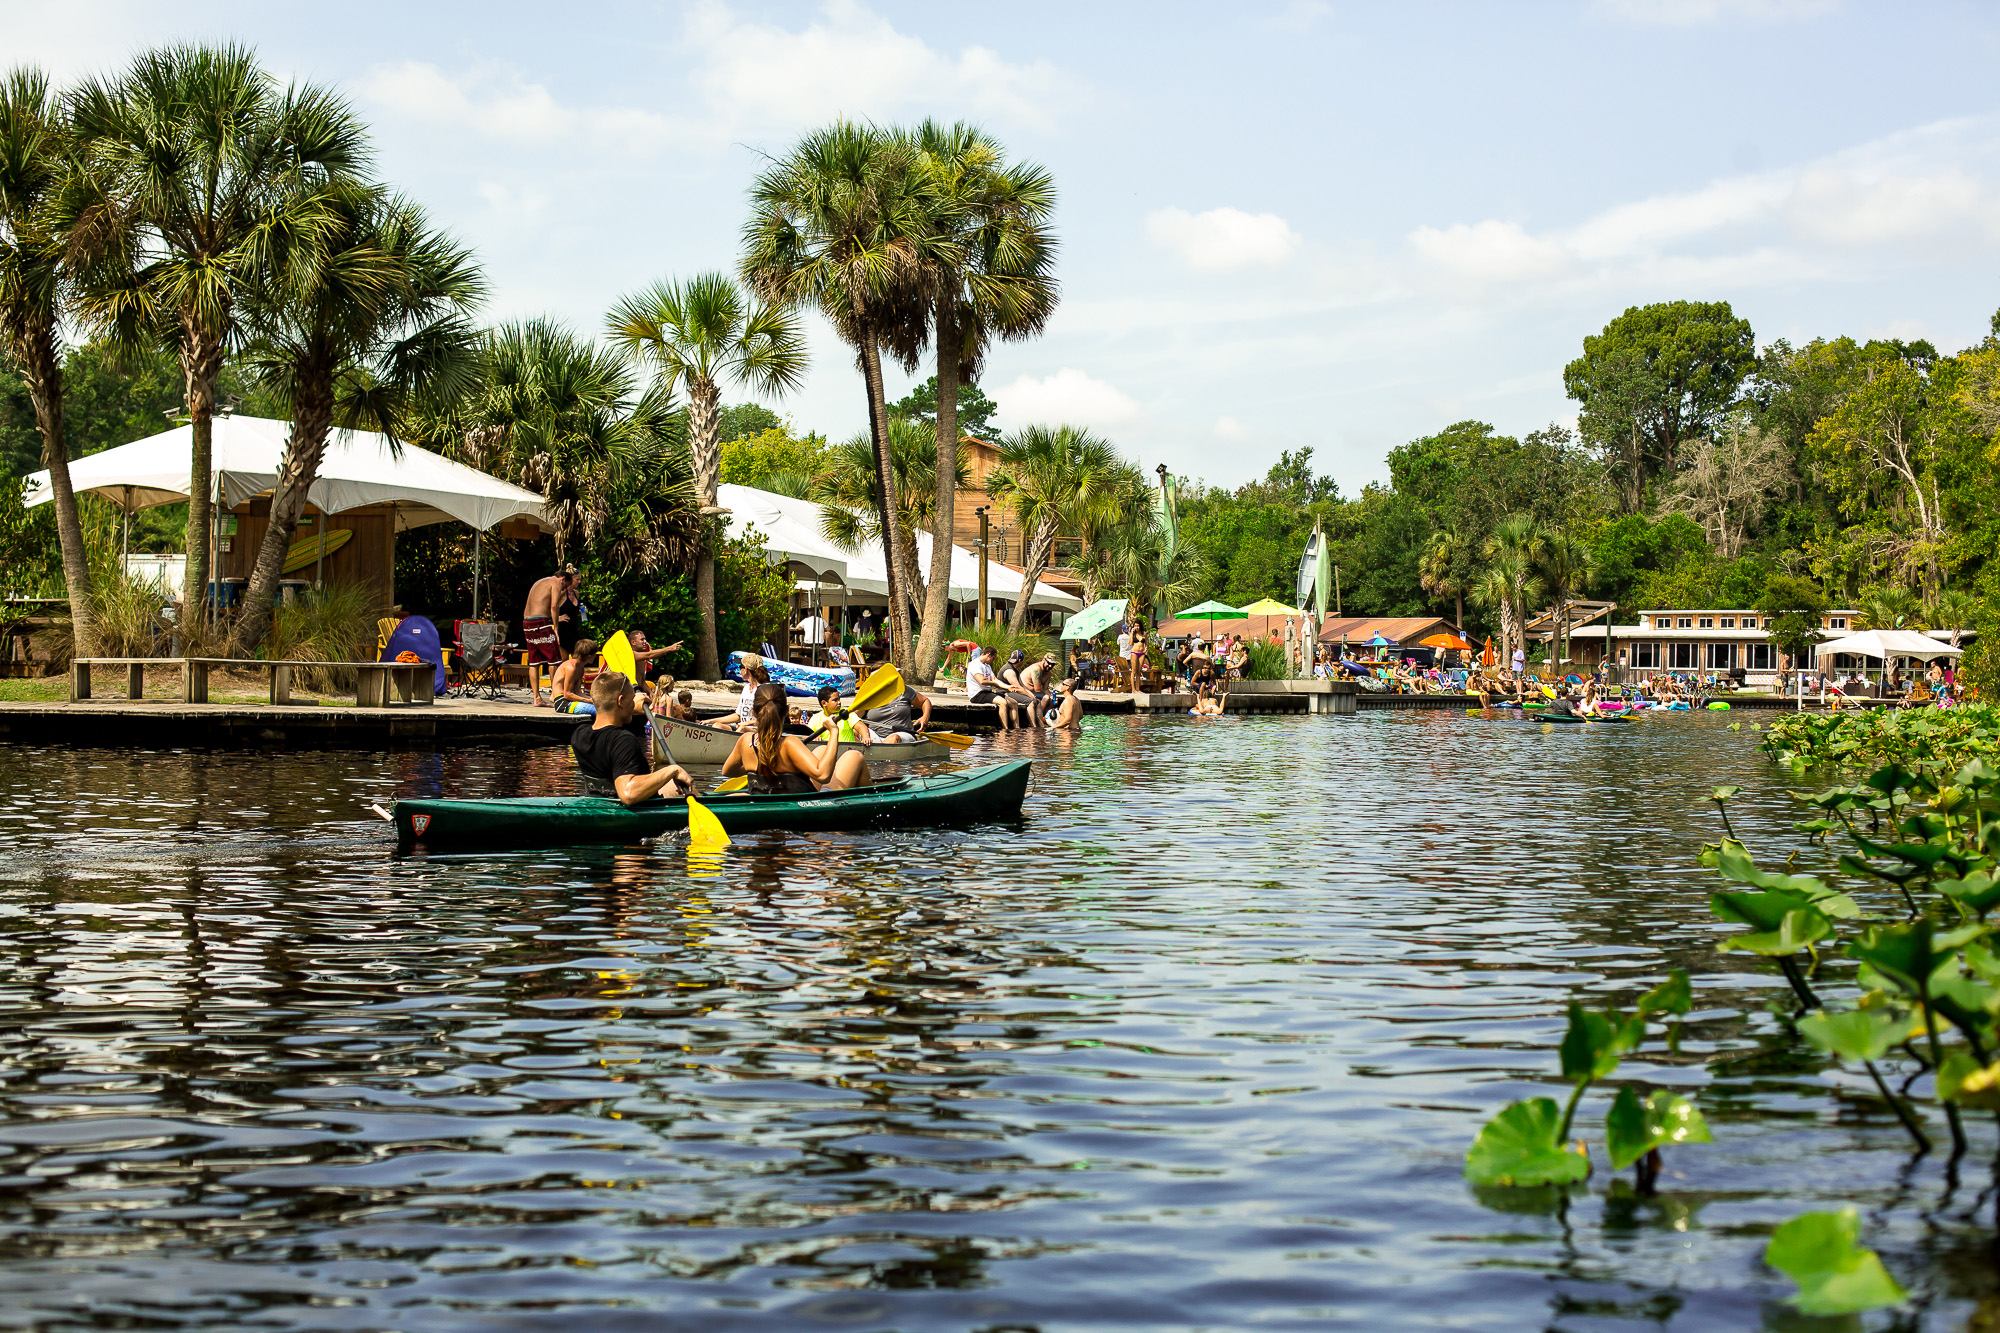 A view of the shore, where the kayaks and canoes are rented. Crowds get really busy during the summer and warmer months.